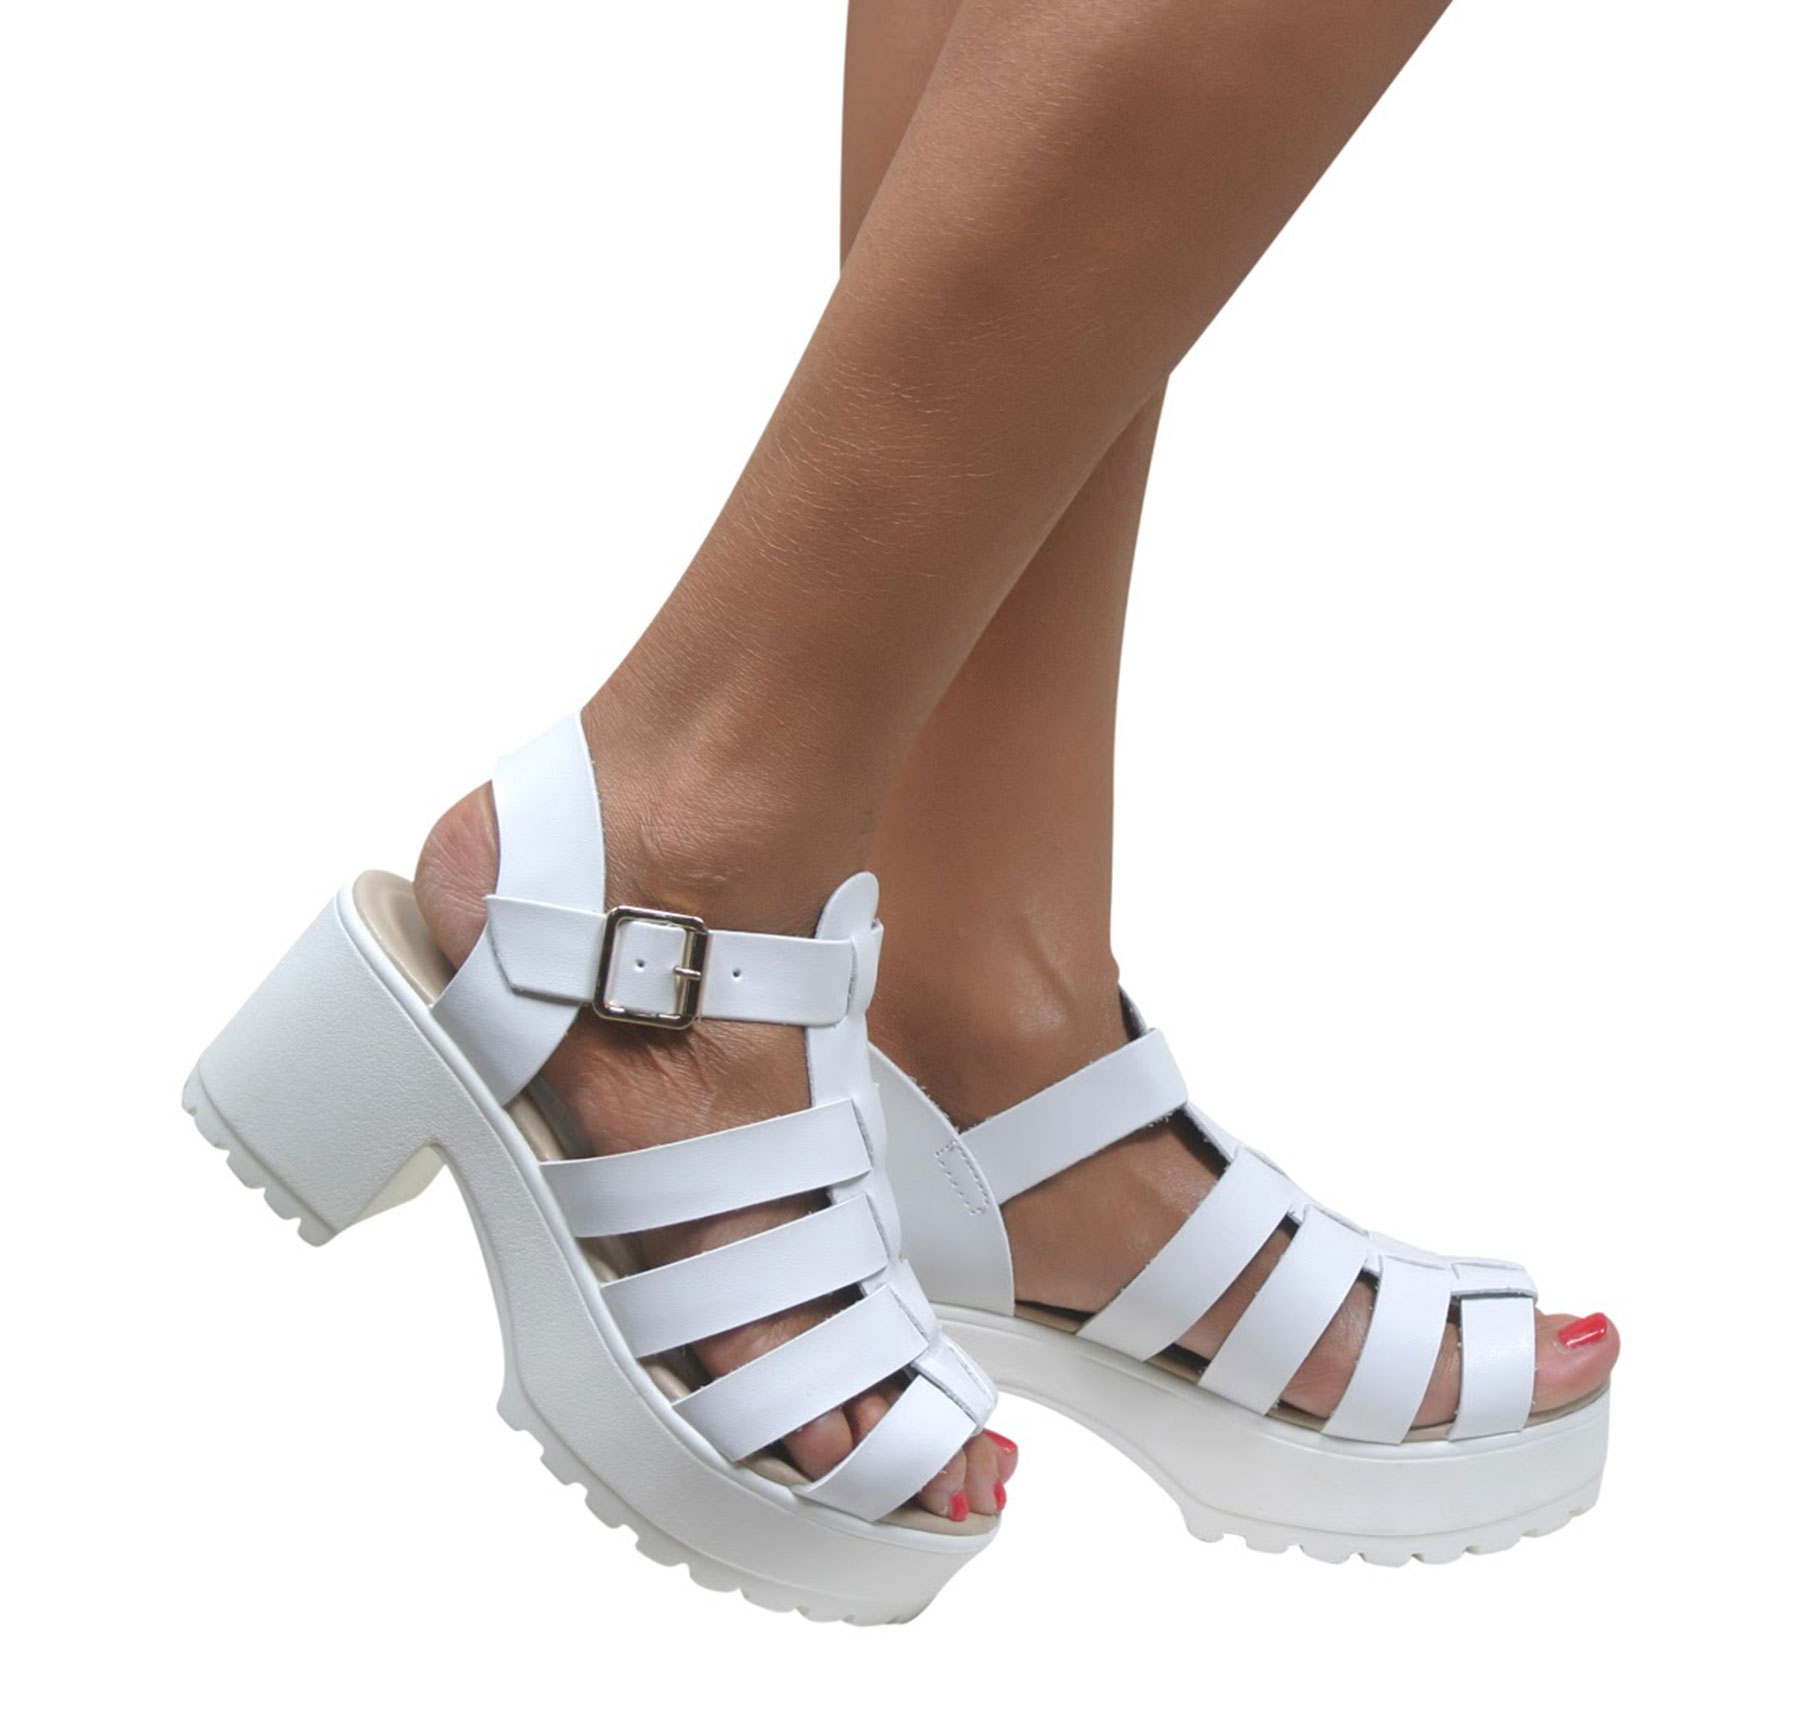 f329858bfacb94 White Block Heel Gladiator Sandals. Womens Ladies Chunky Heel Cleated Sole  Caged Gladiator Sandals Cut .